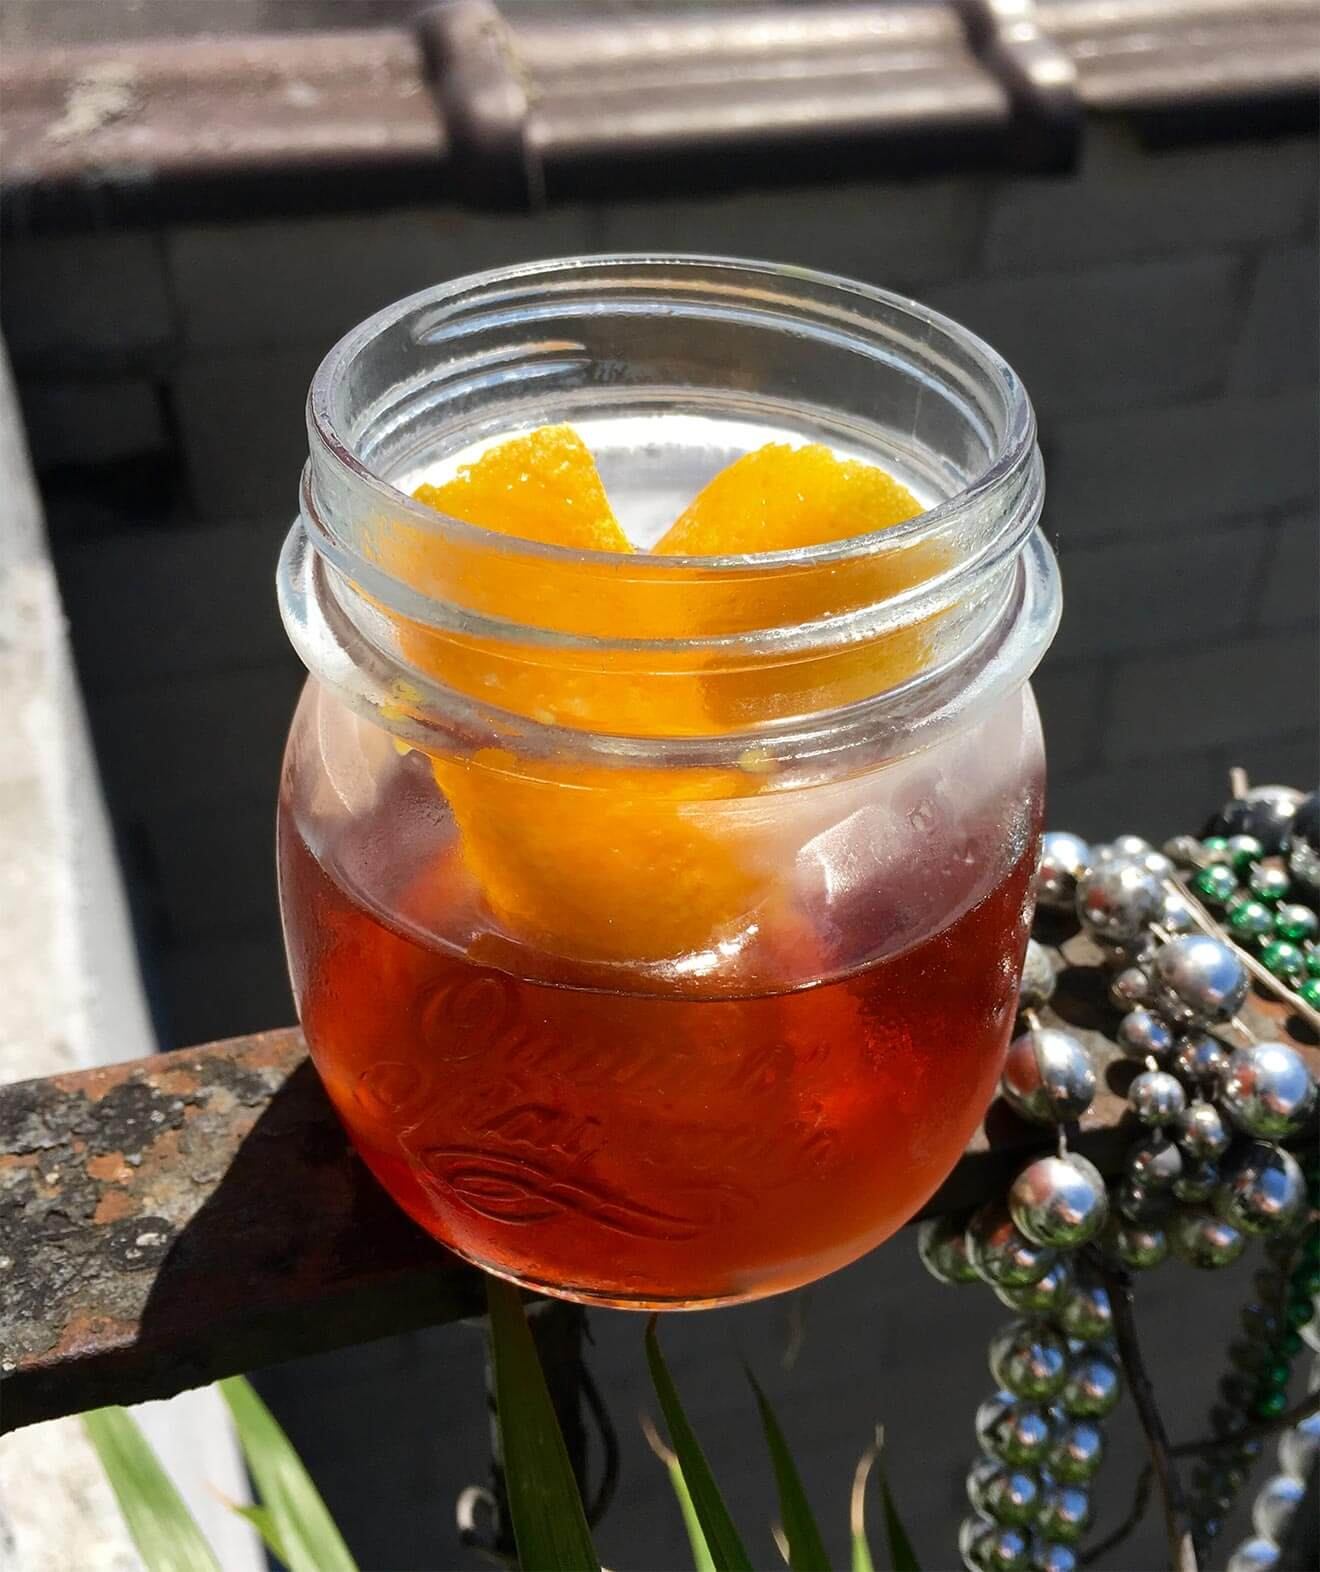 Chilled Drink of the Week: Spirit of Frontage Road